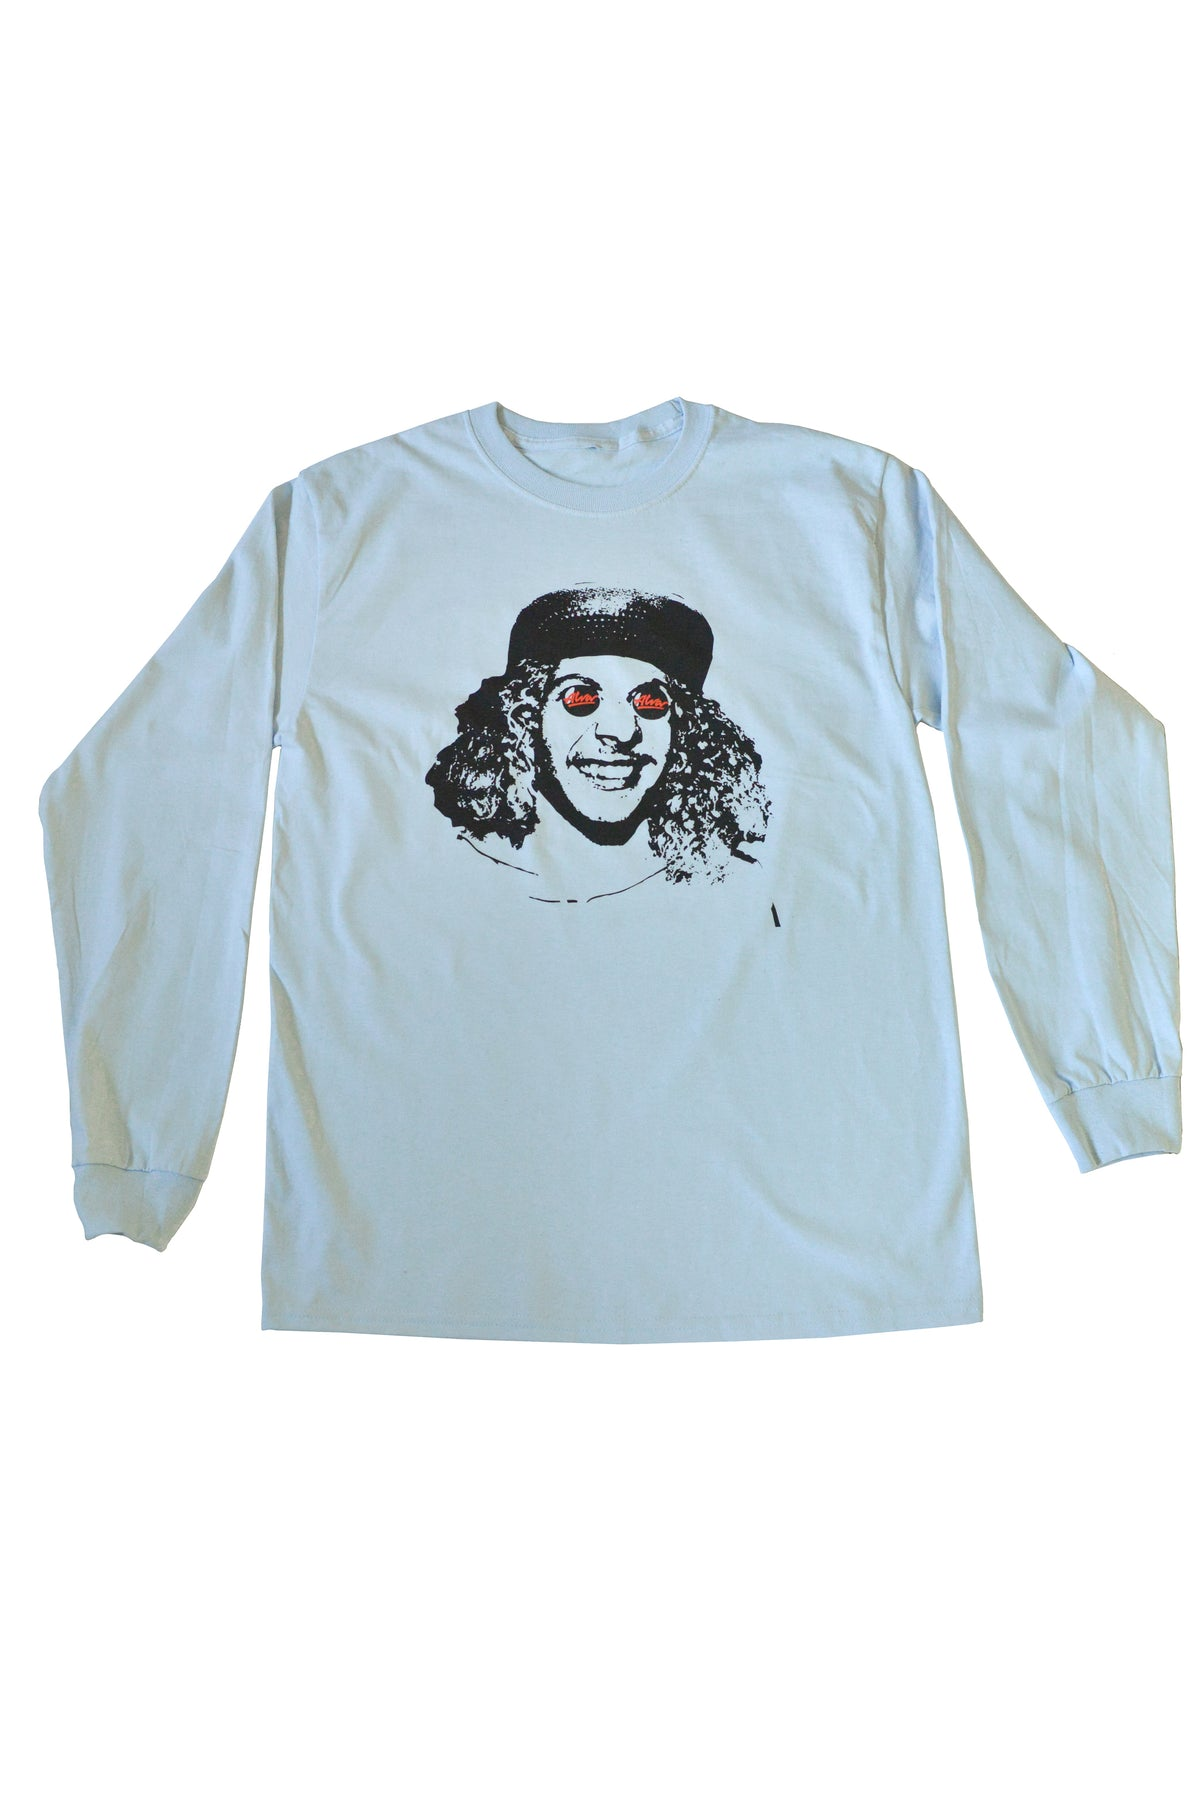 ALVA BUTTON EYES LONG SLEEVE - BLUE